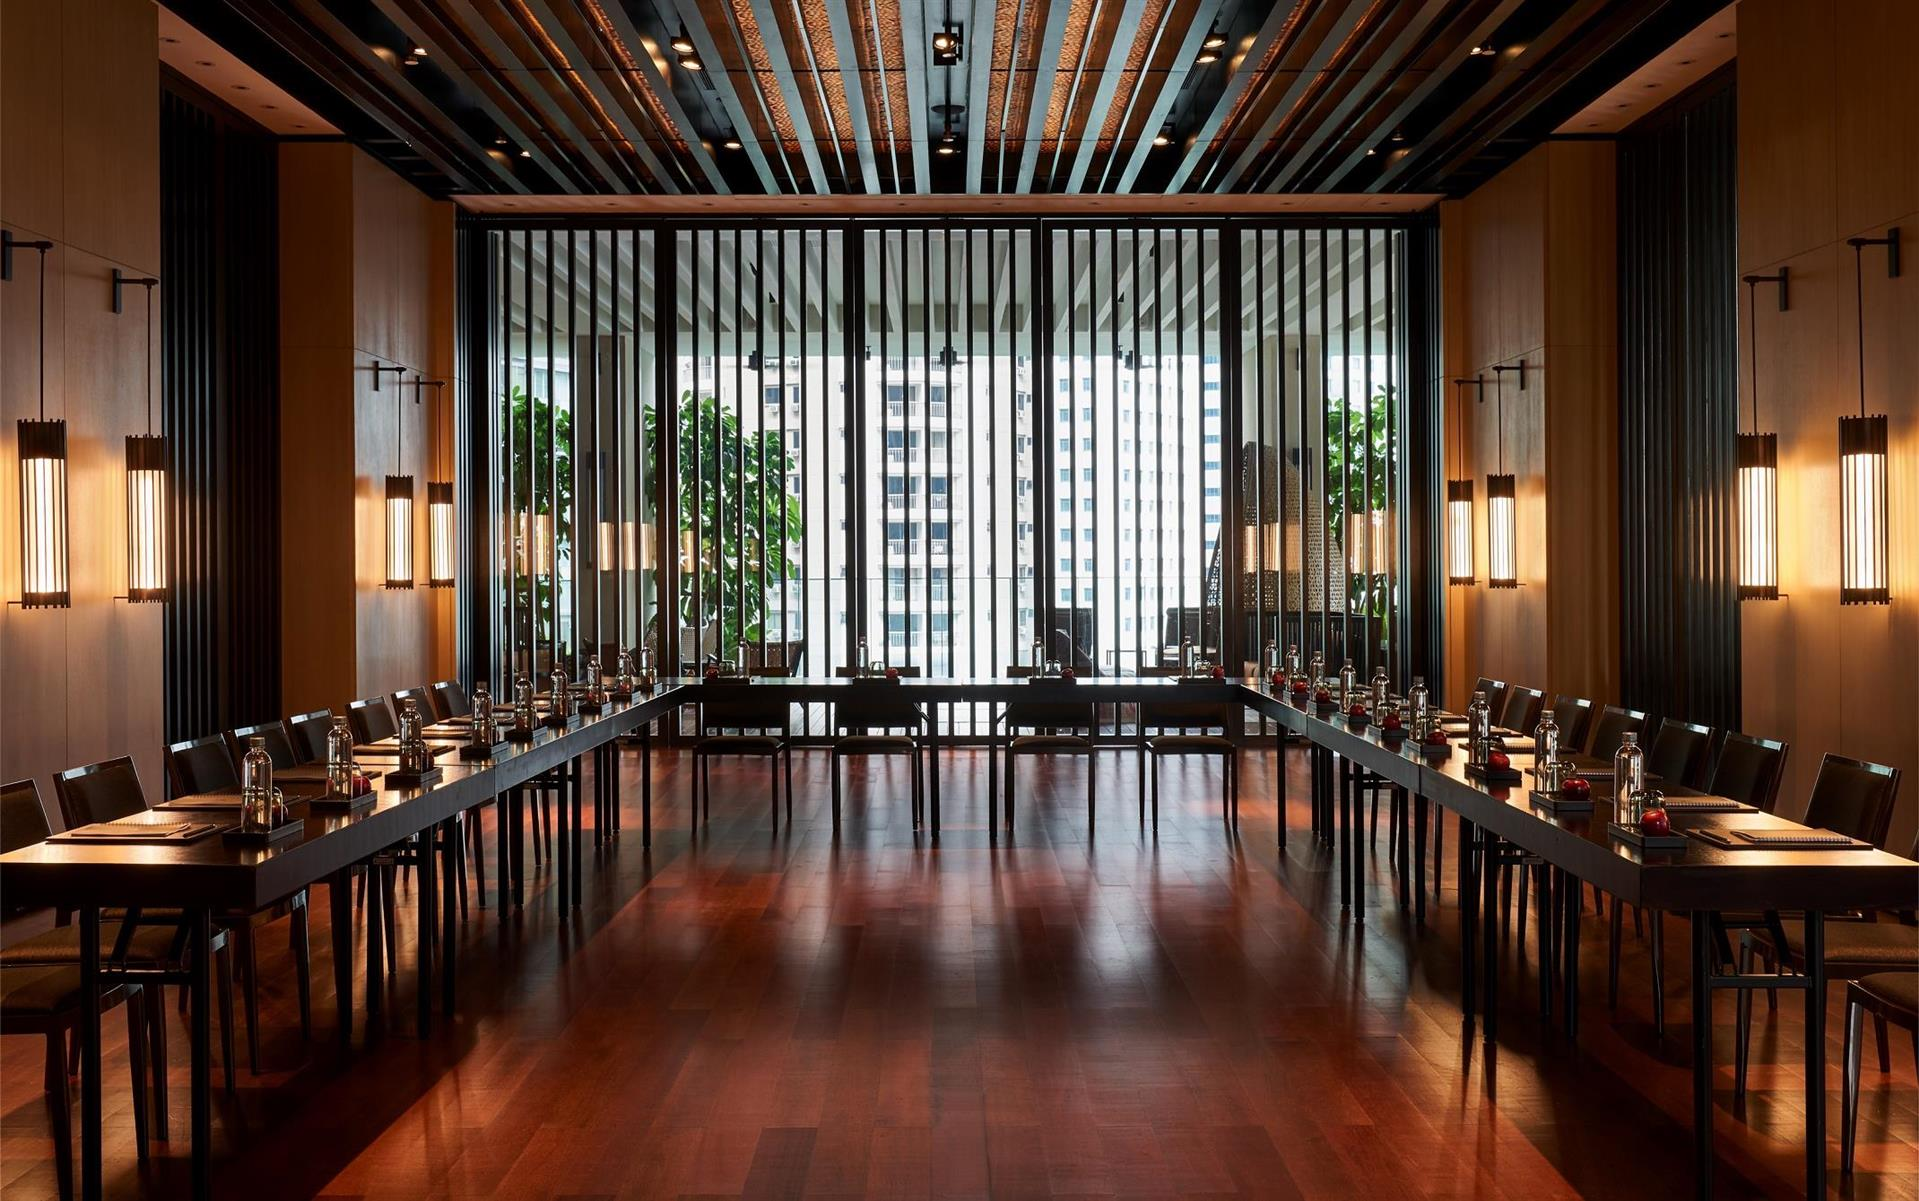 tropical decor design ideas pictures and inspiration.htm meetings and events at the ruma hotel and residences  kuala lumpur  my  meetings and events at the ruma hotel